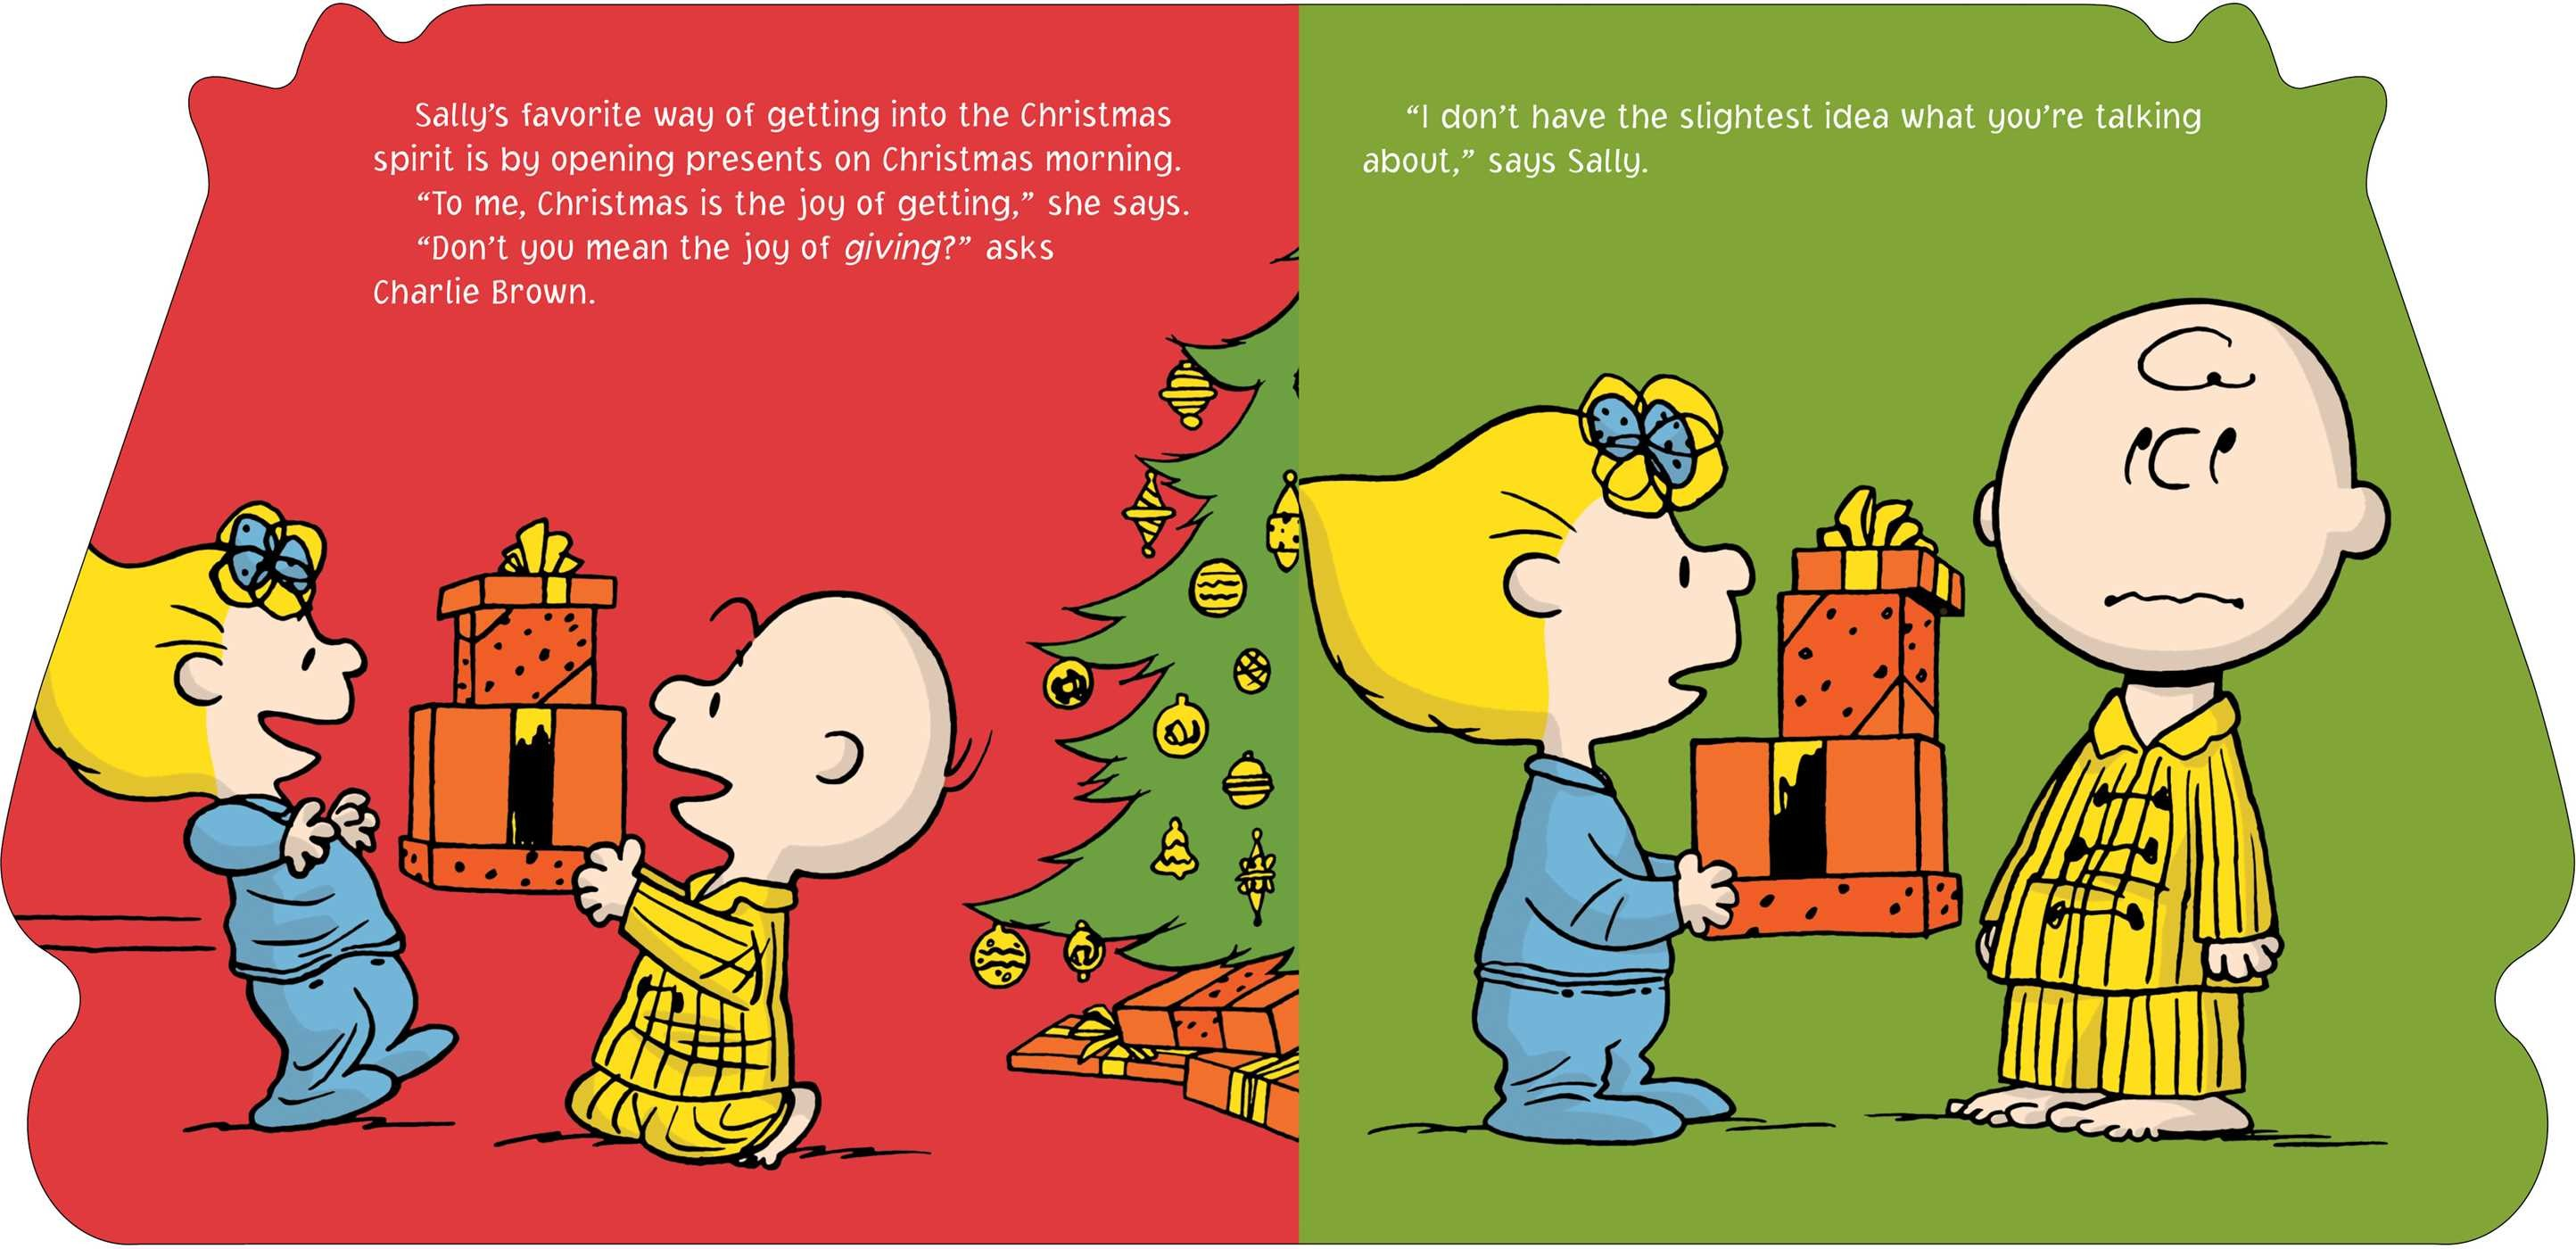 Christmas Charlie Brown.Merry Christmas Charlie Brown Book By Charles M Schulz